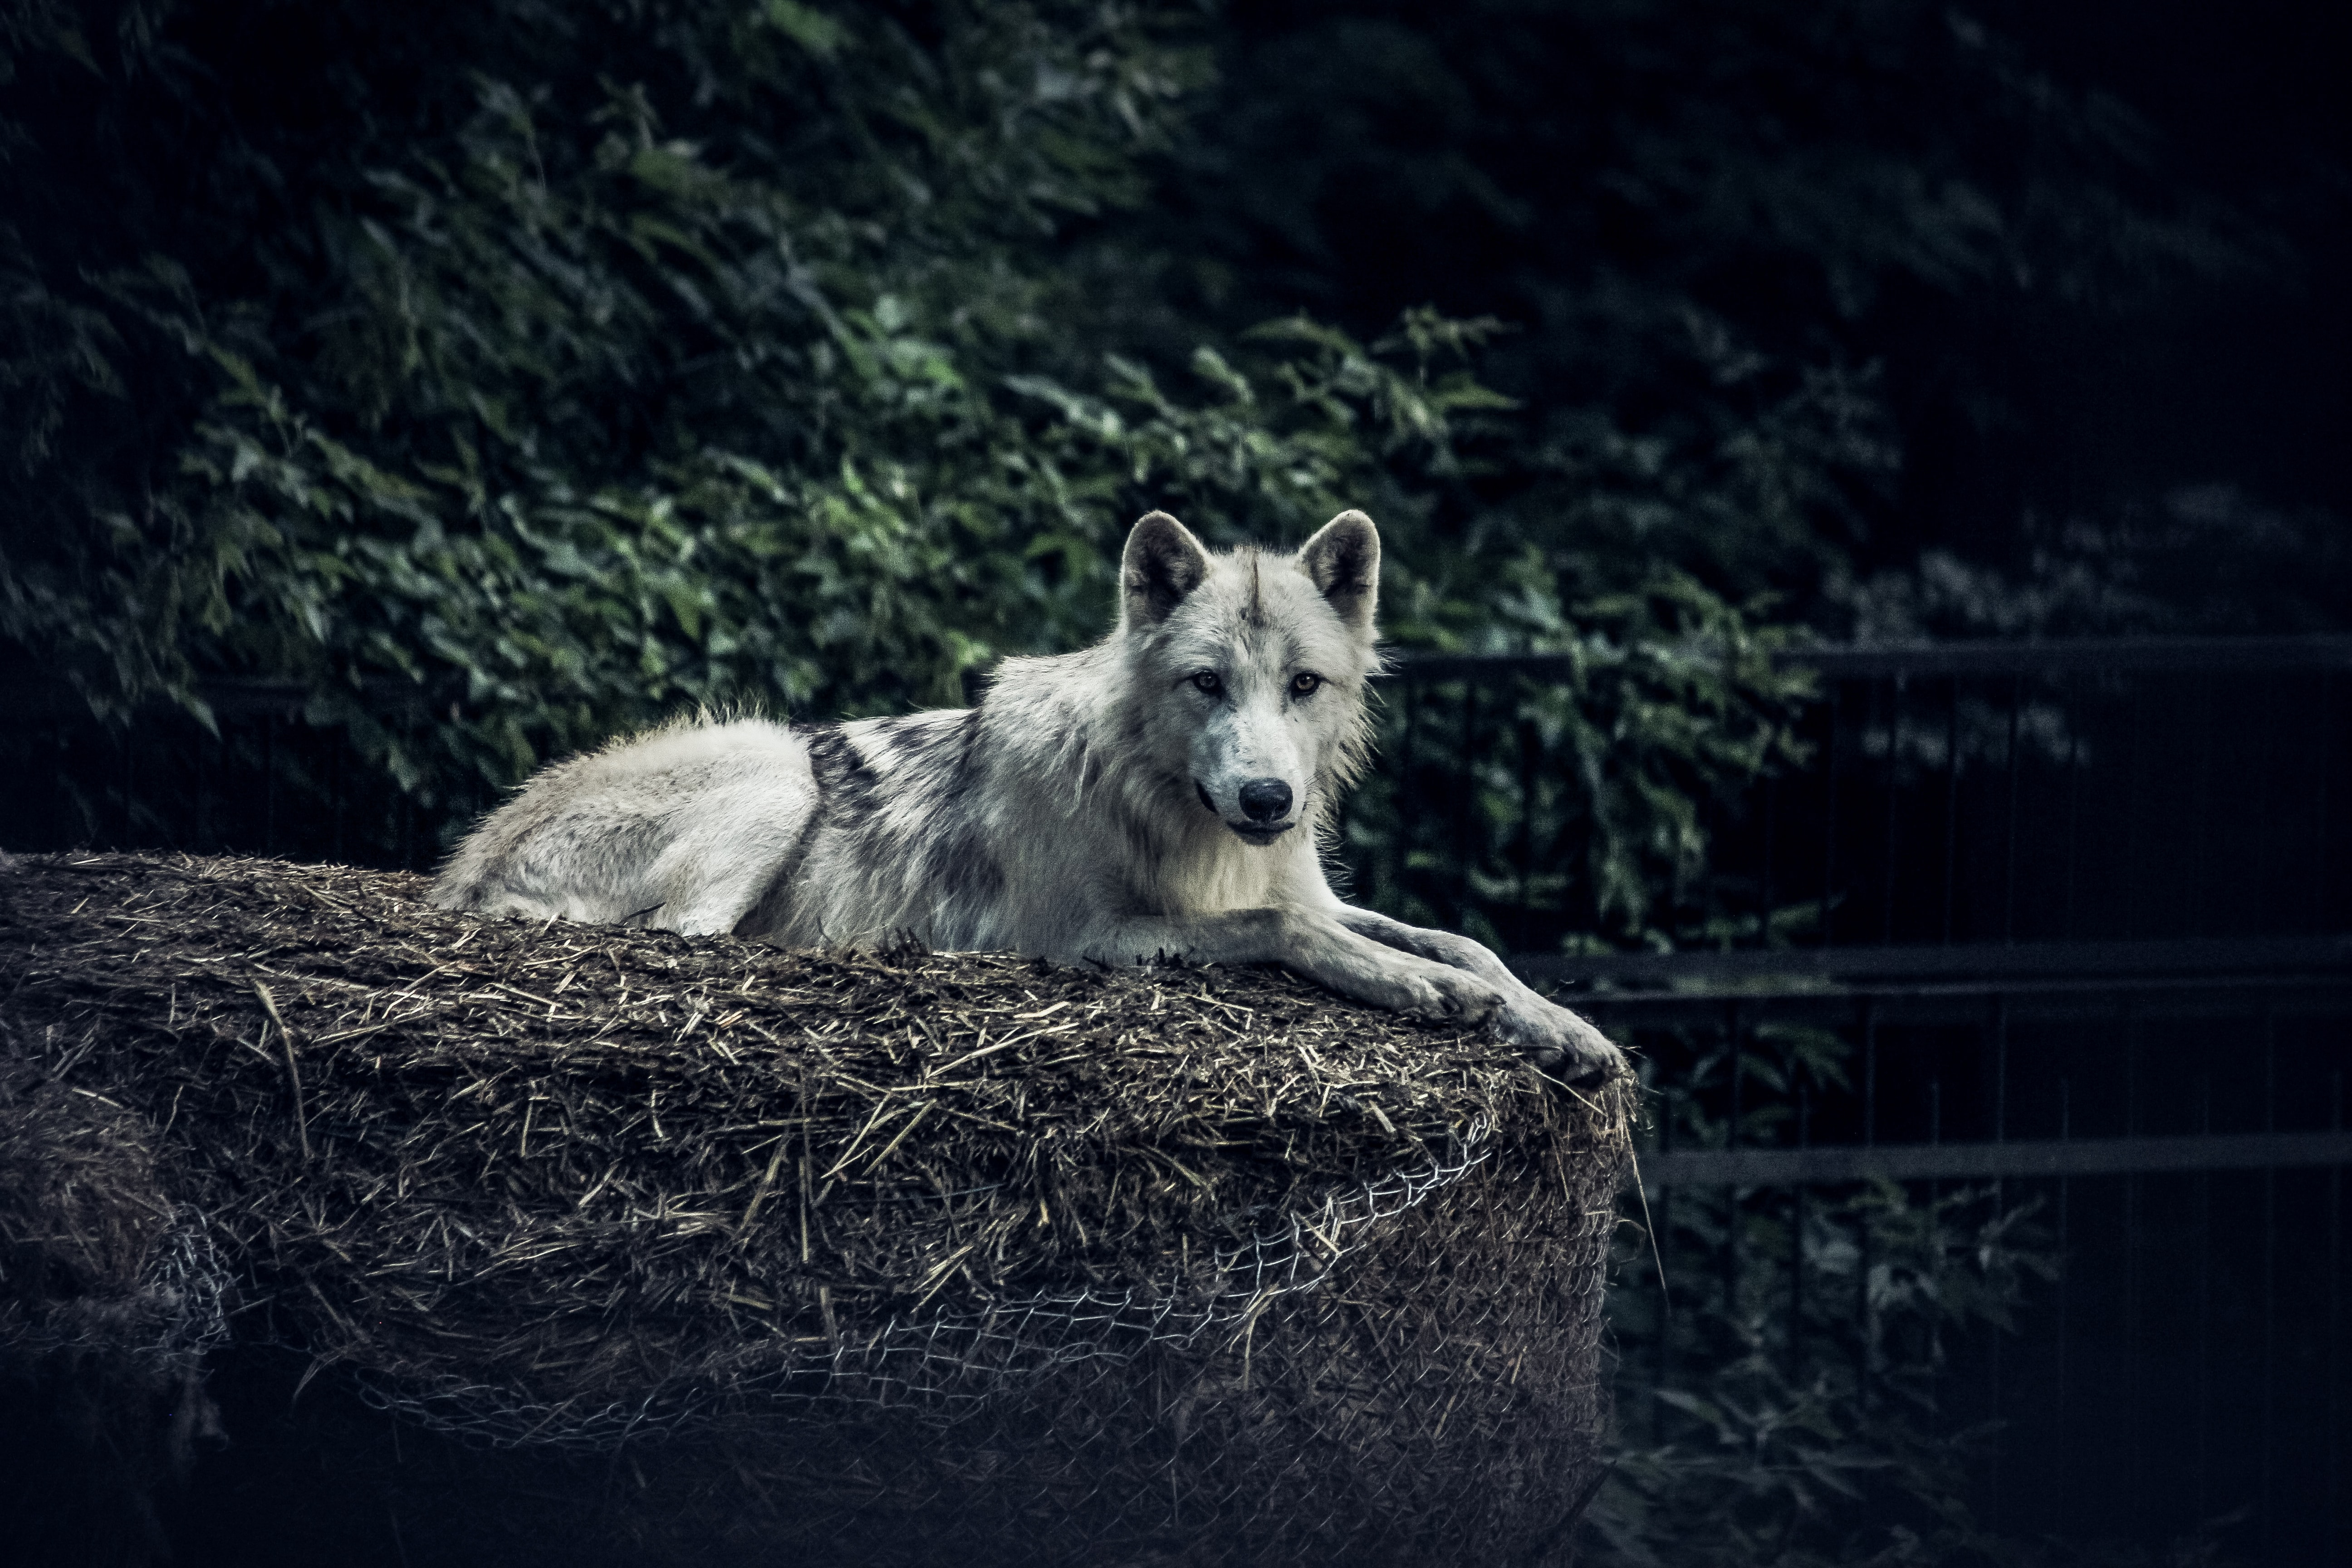 124690 download wallpaper Animals, Wolf, Predator, Sight, Opinion, Animal, Hay screensavers and pictures for free